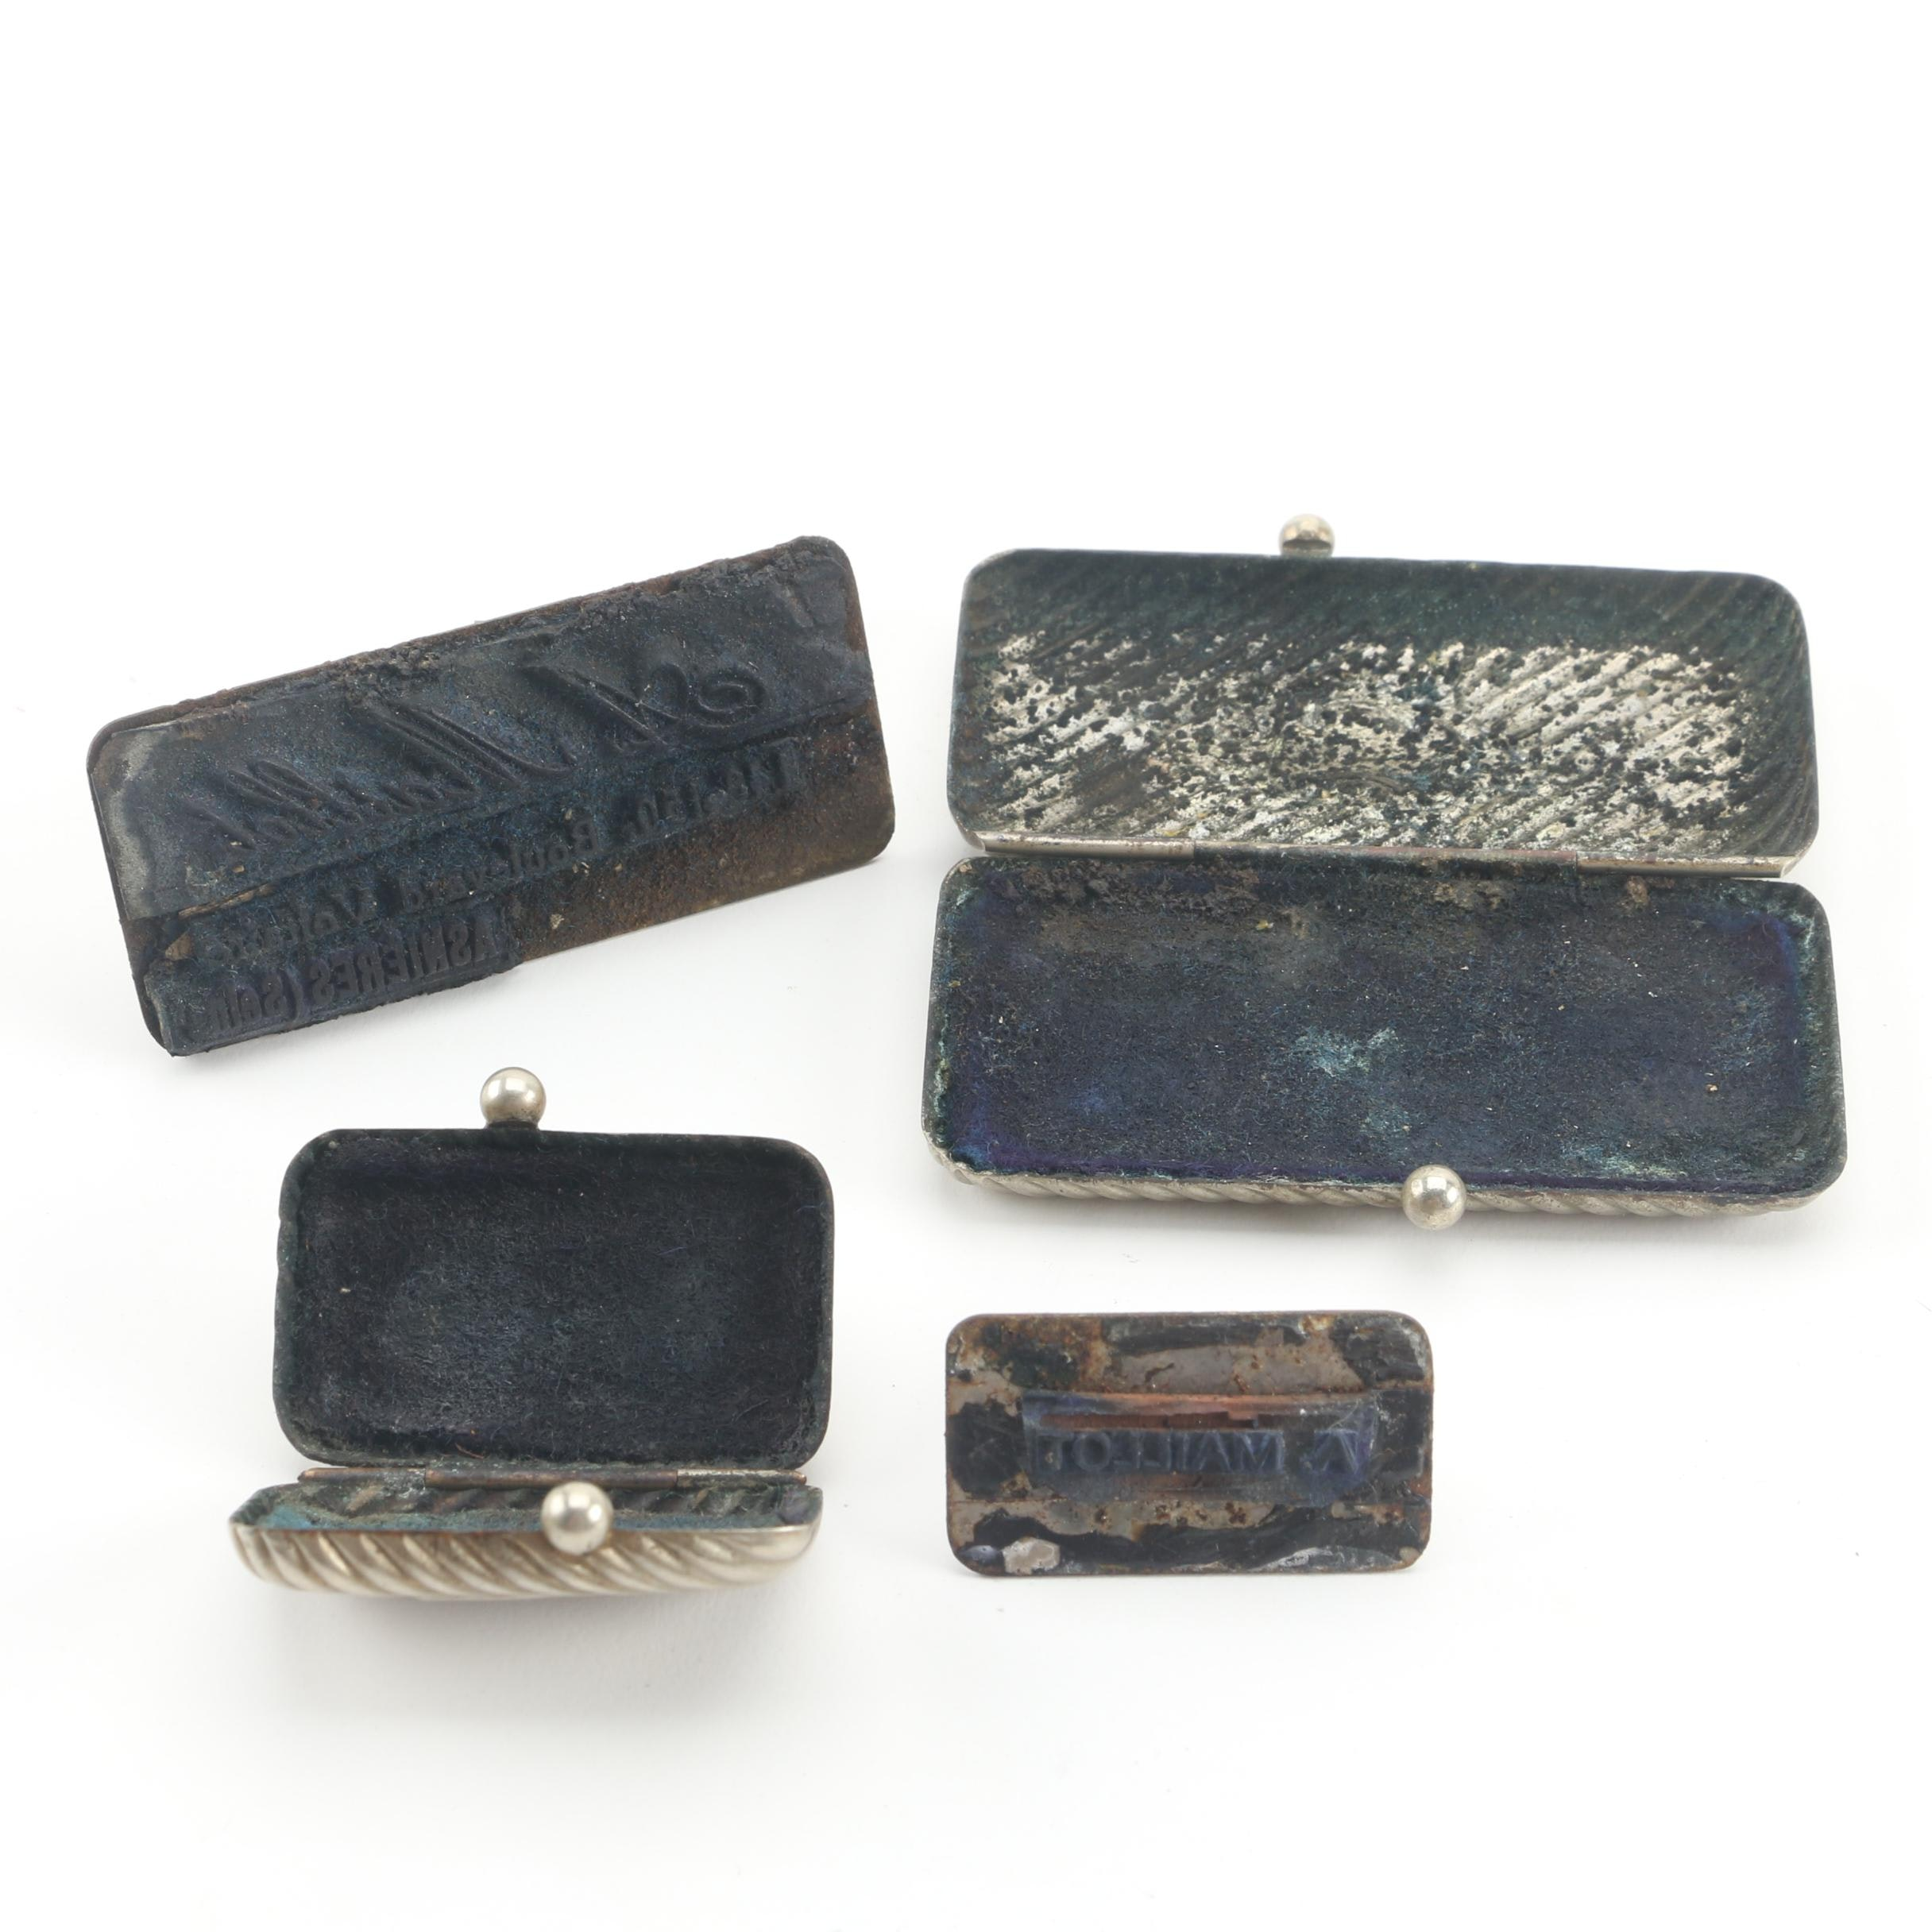 Antique French Signature Stamps with Silver-Toned Metal Cases